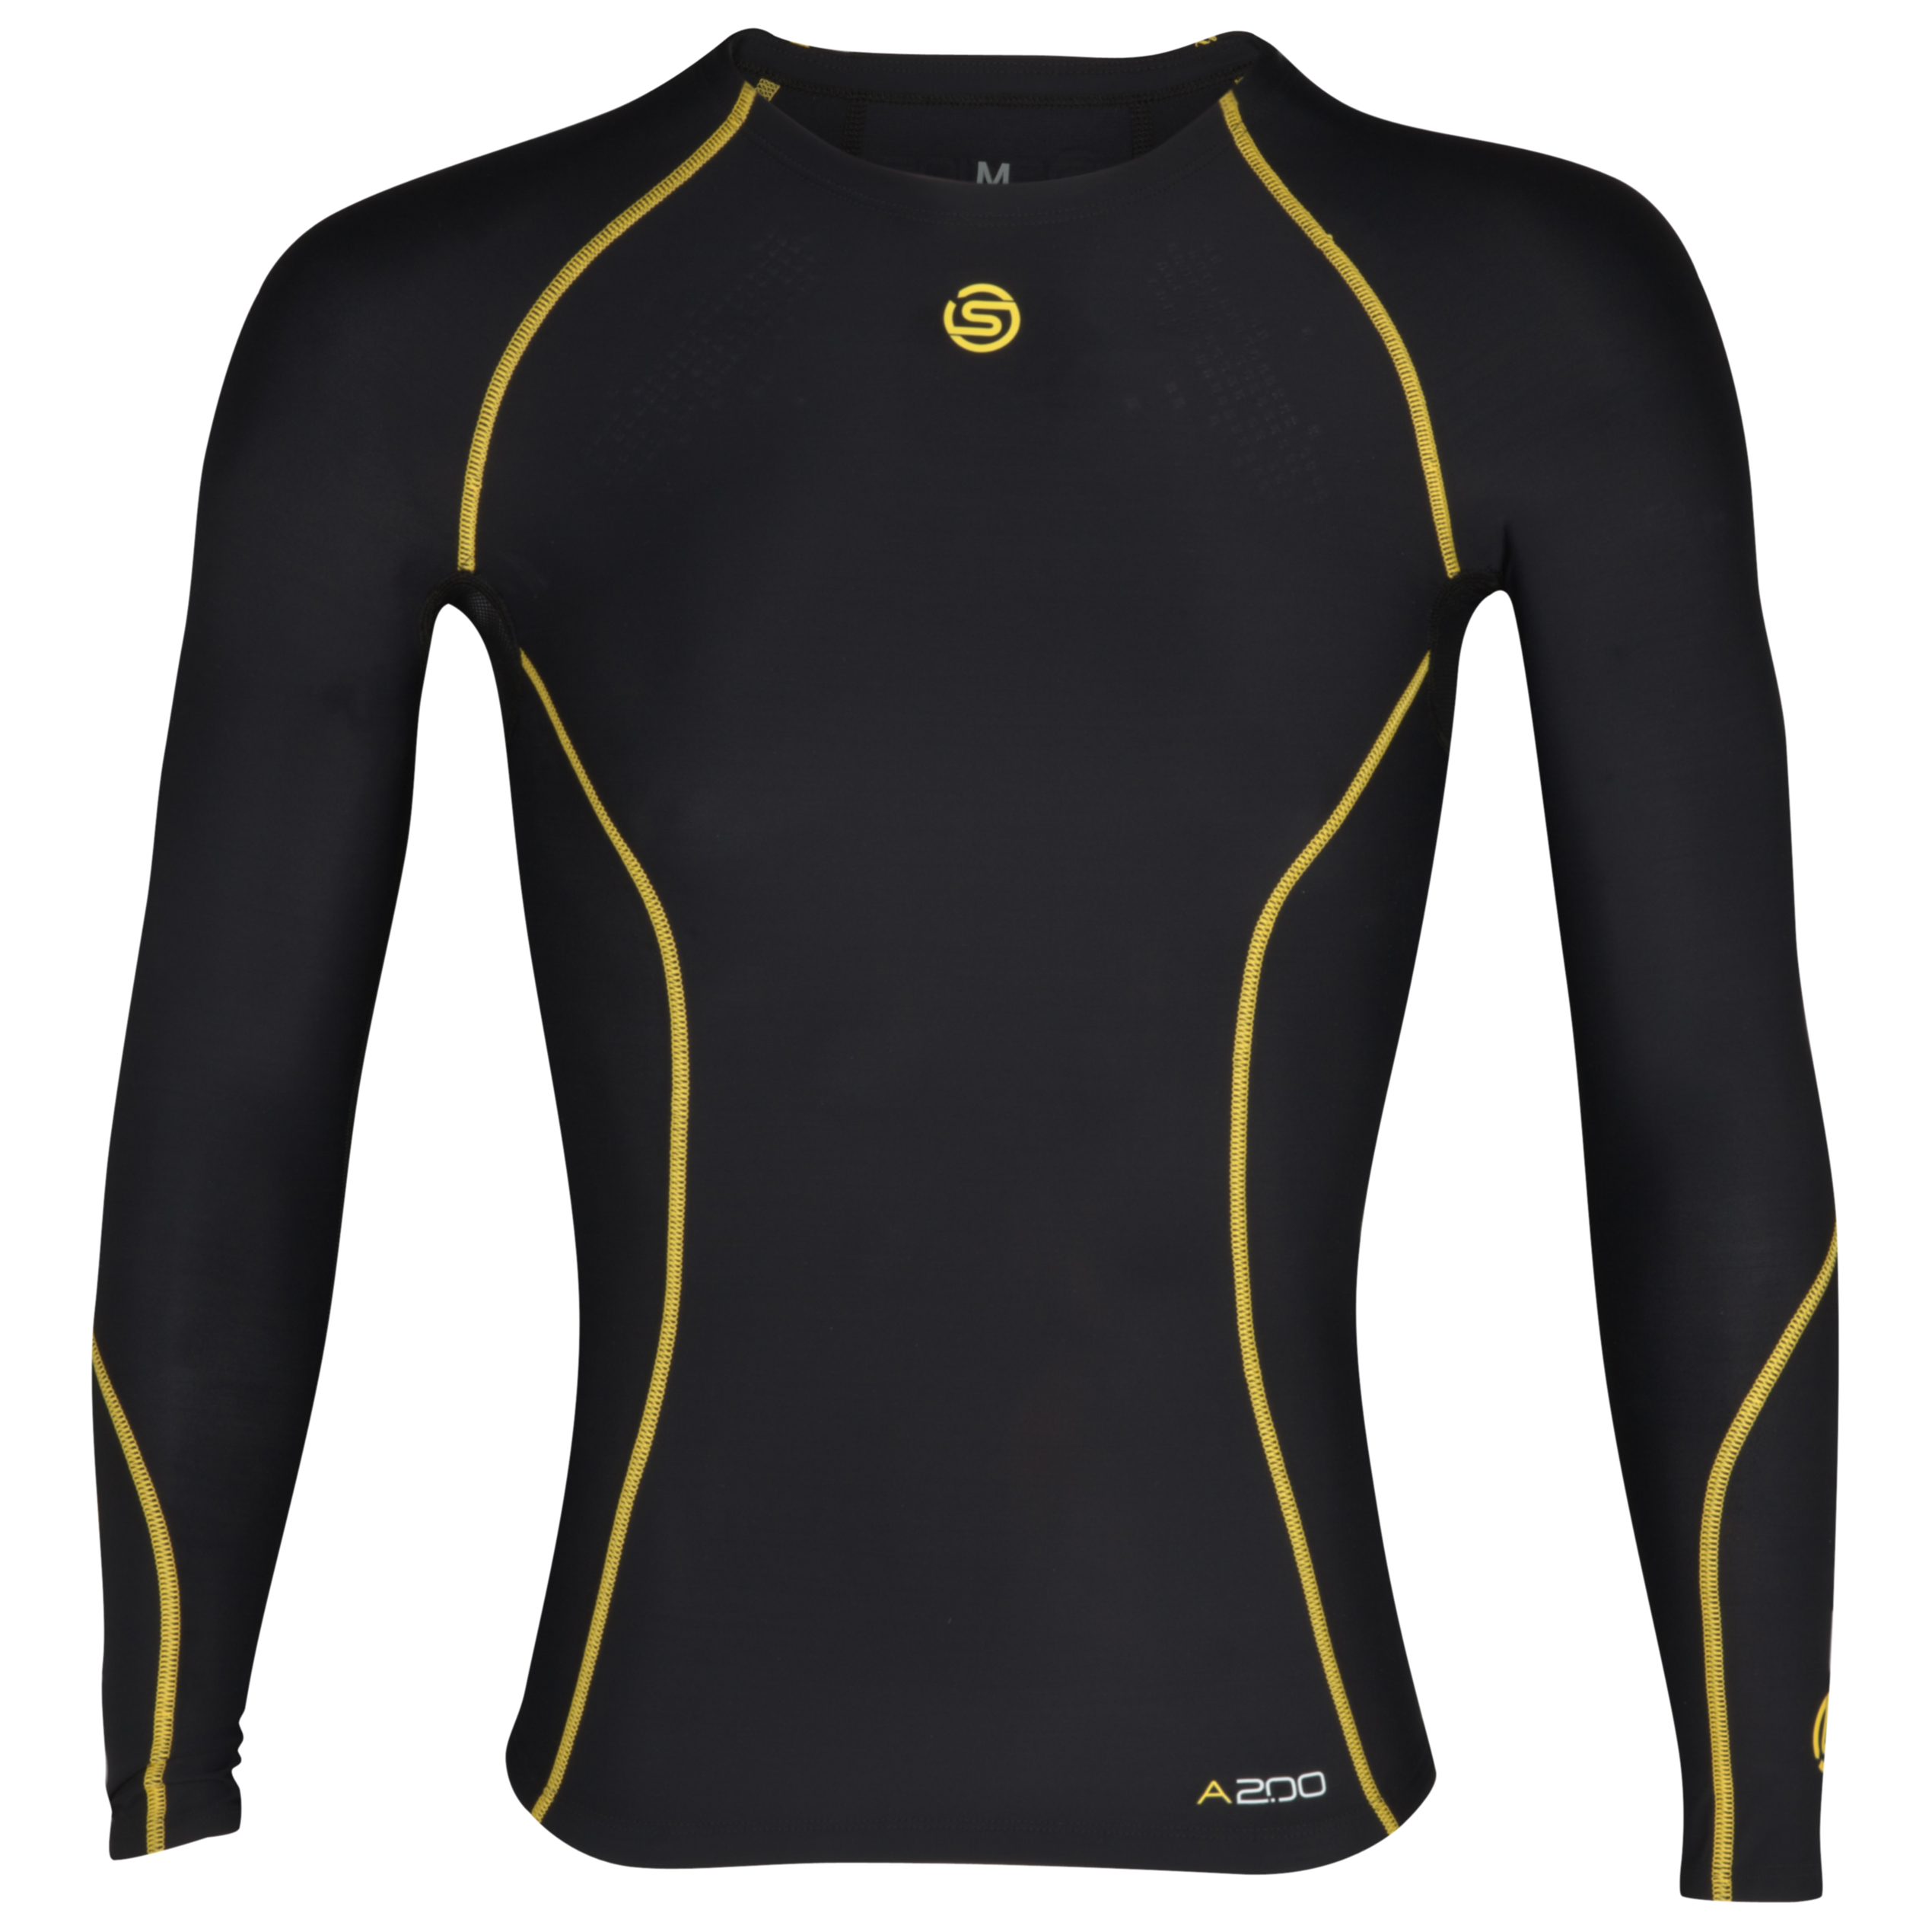 Skins A200 Long Sleeve Top - Black/Yellow